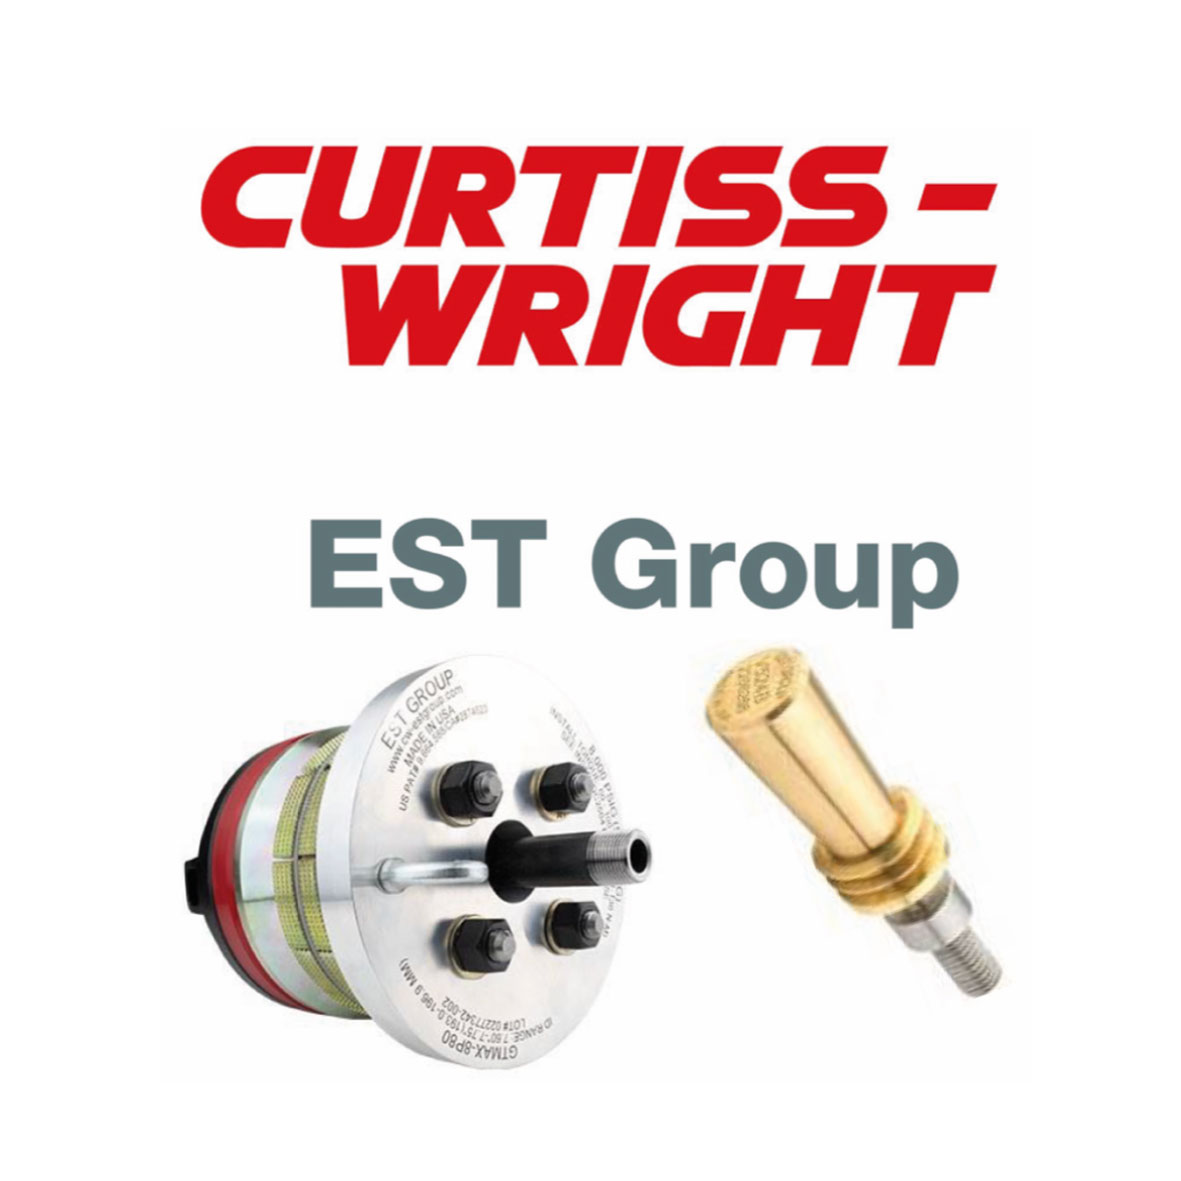 You are currently viewing Ufficiale – Nuova Partnership Exonder – EST (Curtiss Wright)